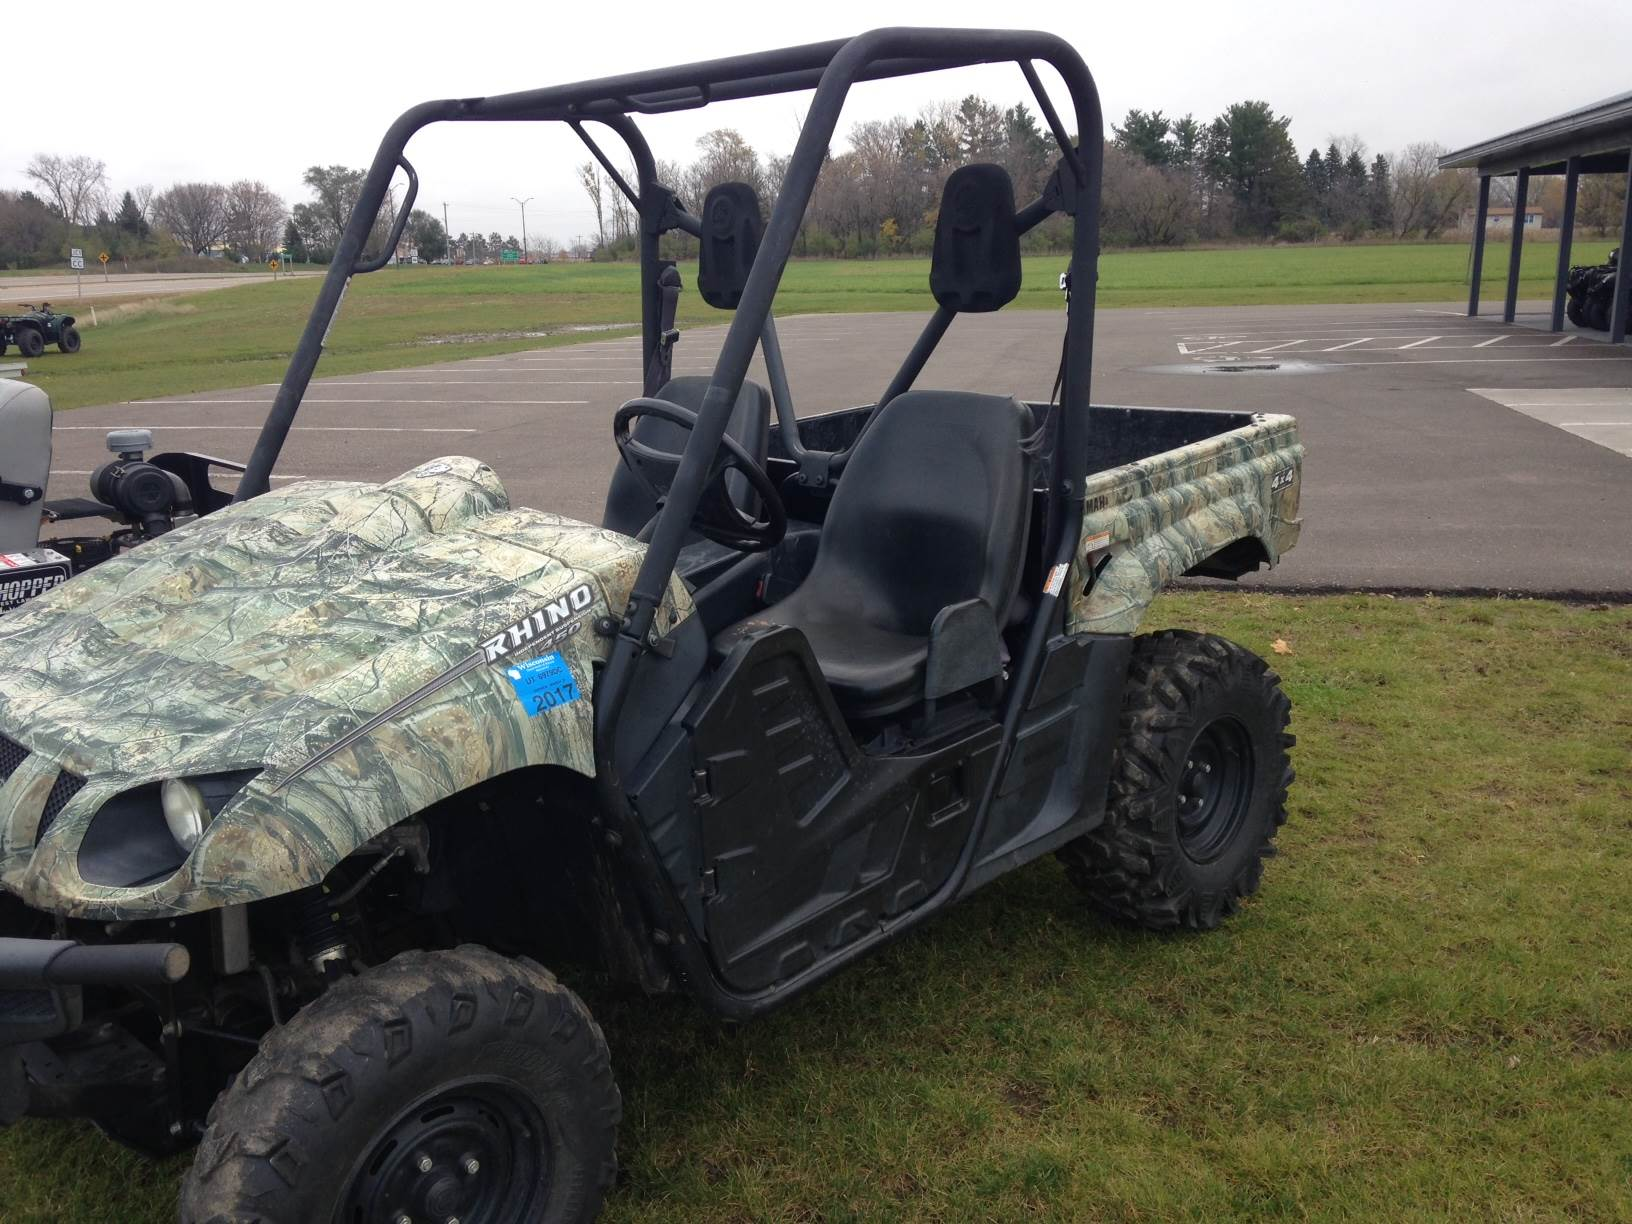 2009 yamaha rhino 450 auto 4x4 for sale new richmond wi for Yamaha grizzly 450 for sale